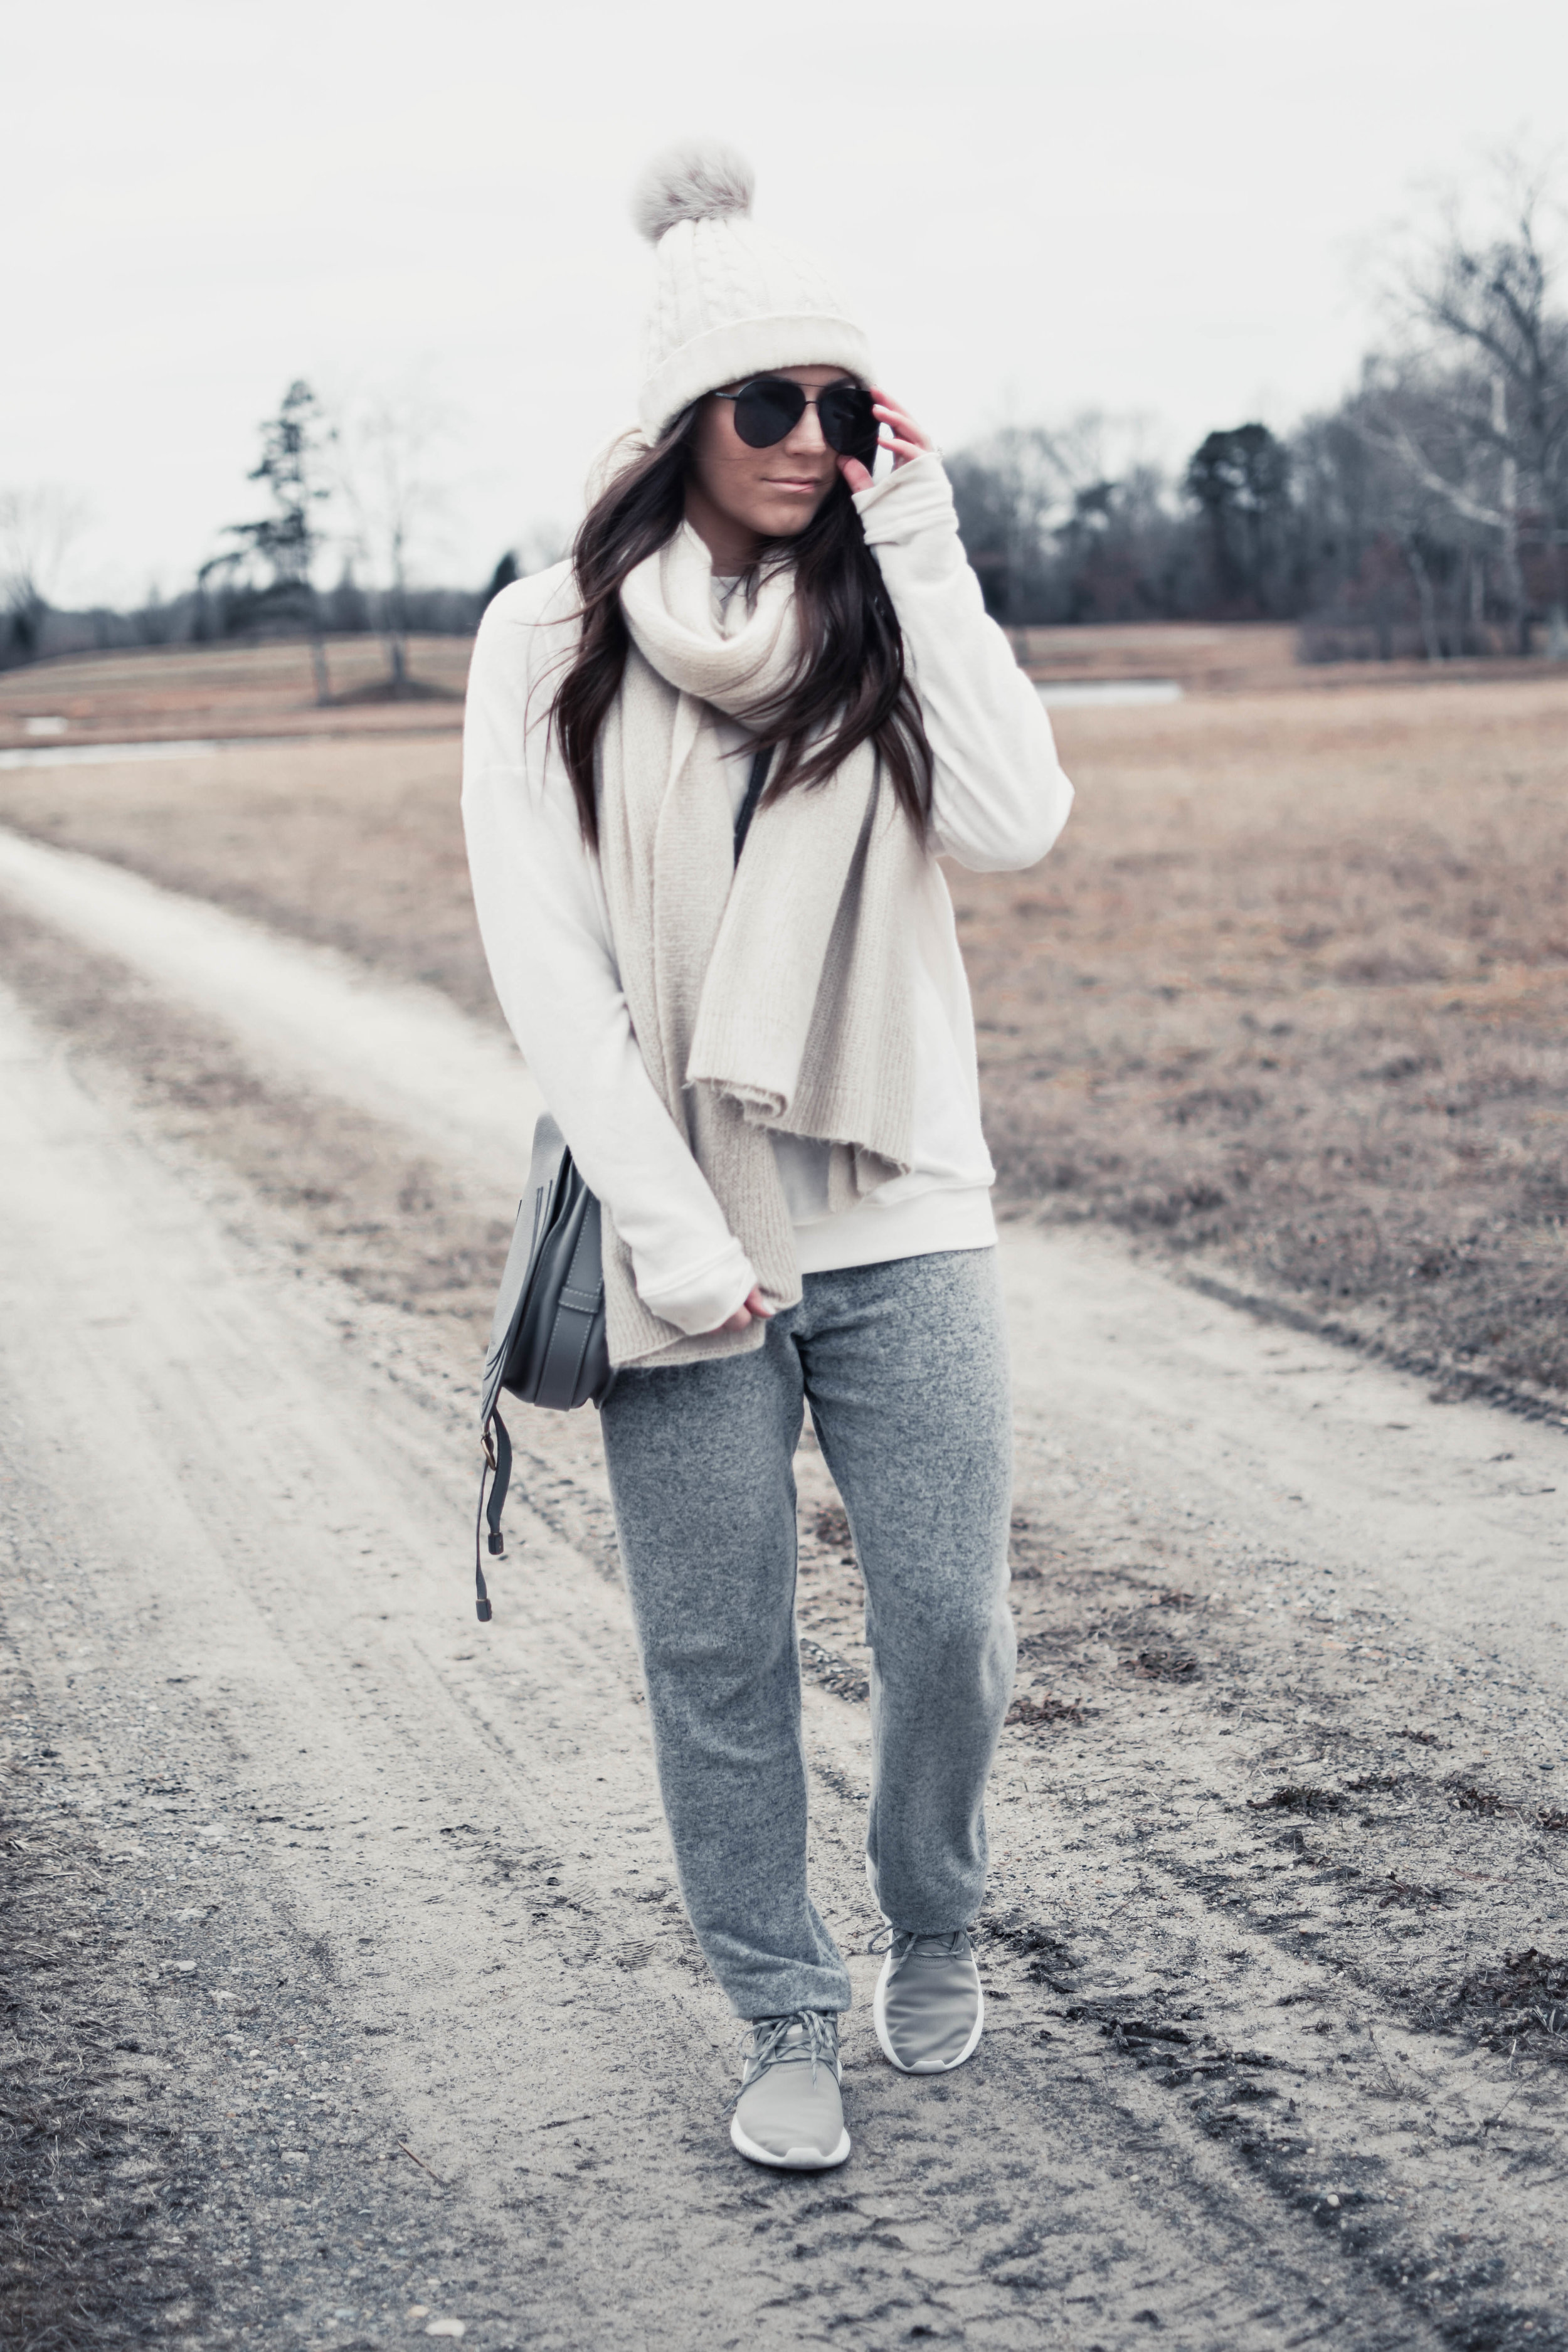 How to Style Joggers | Pine Barren Beauty | comfy outfit idea, cozy outfit idea, winter outfit idea, winter fashion, athleisure outfit